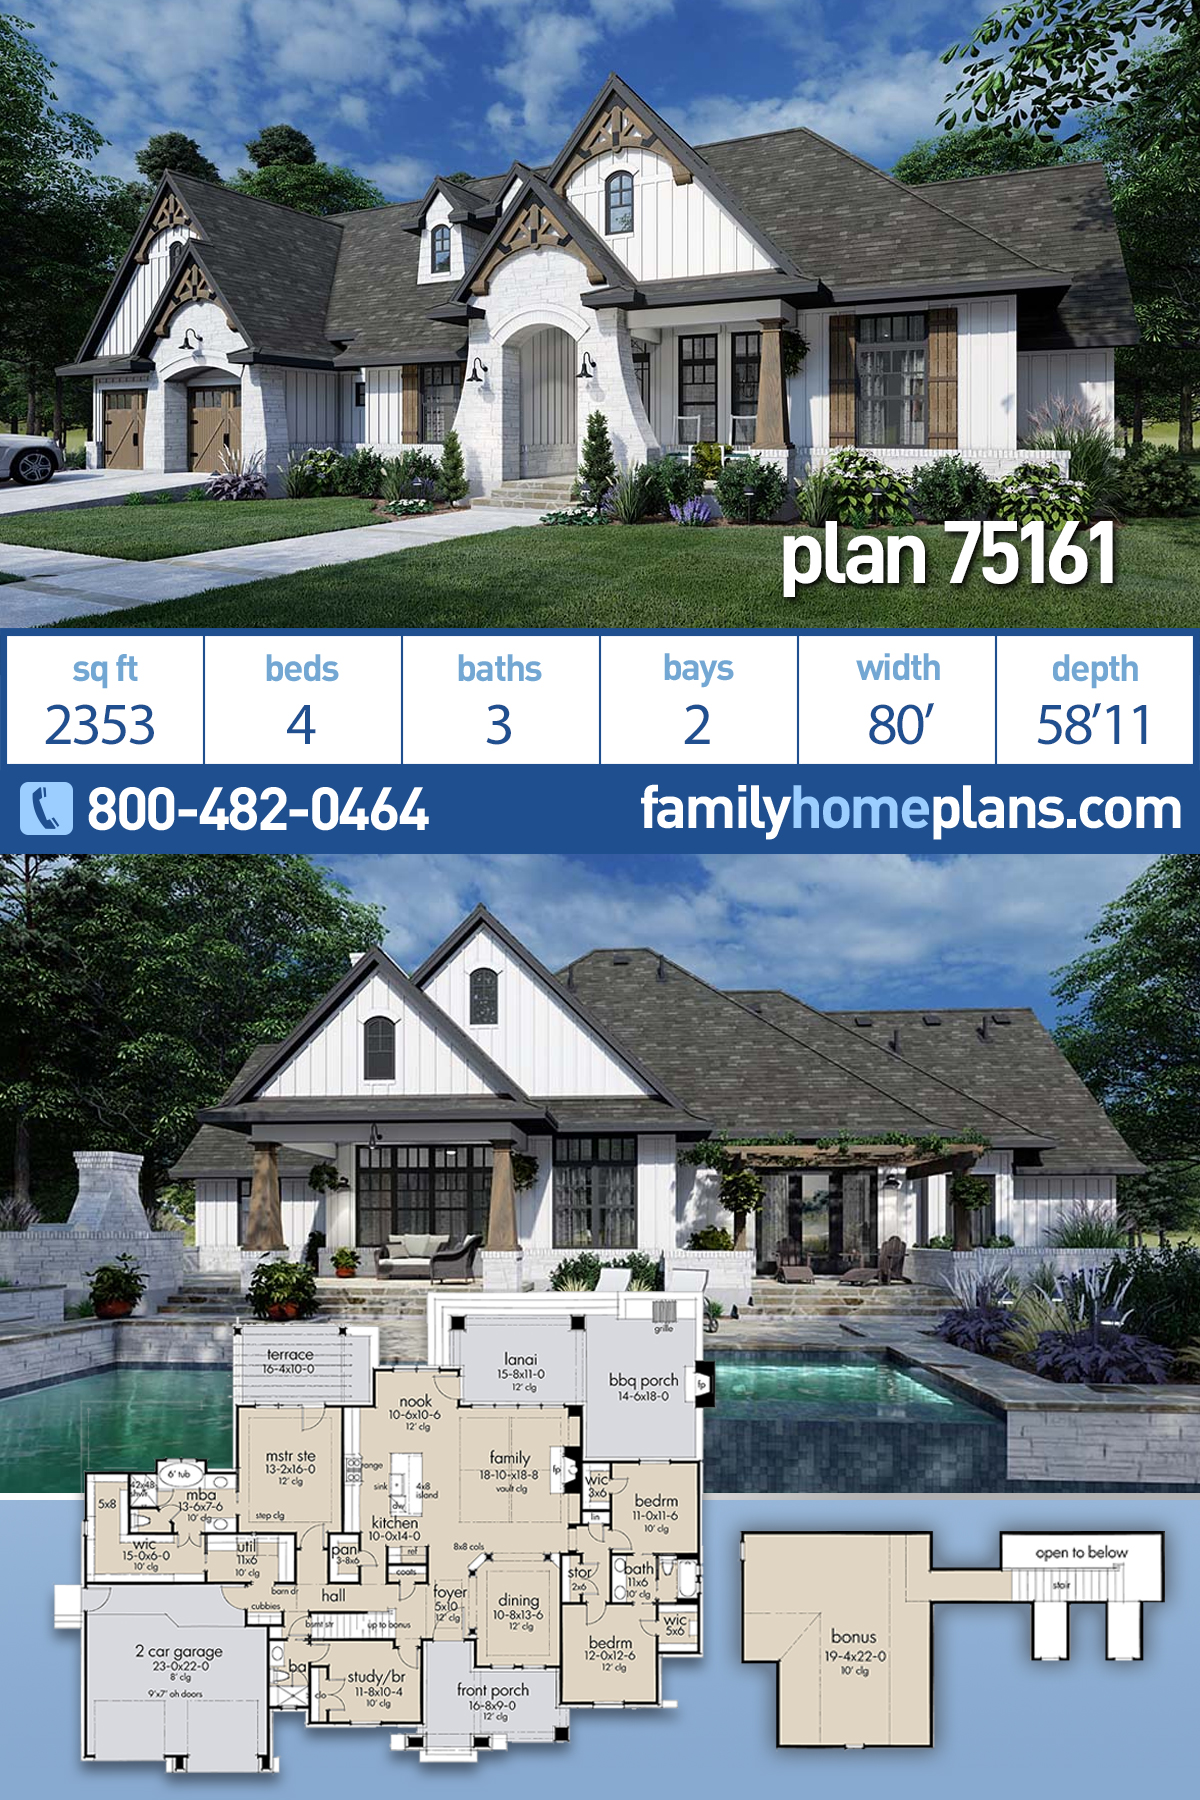 European, Farmhouse, Traditional House Plan 75161 with 4 Beds, 3 Baths, 2 Car Garage